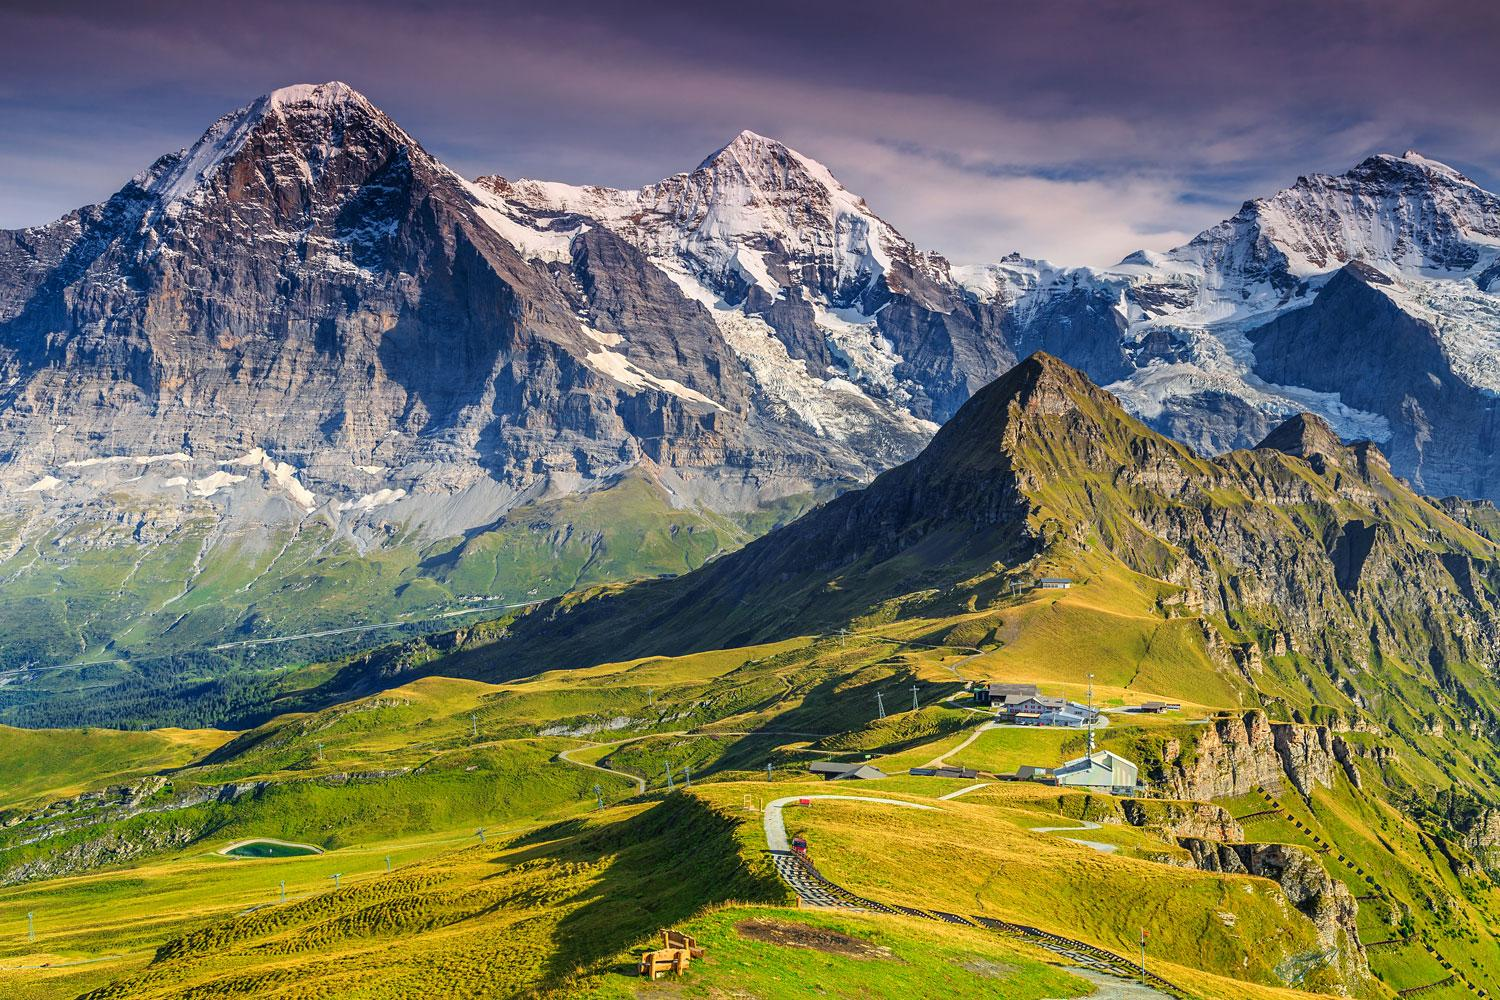 Self-guided walking tour - Highlights of the Bernese Oberland In Style